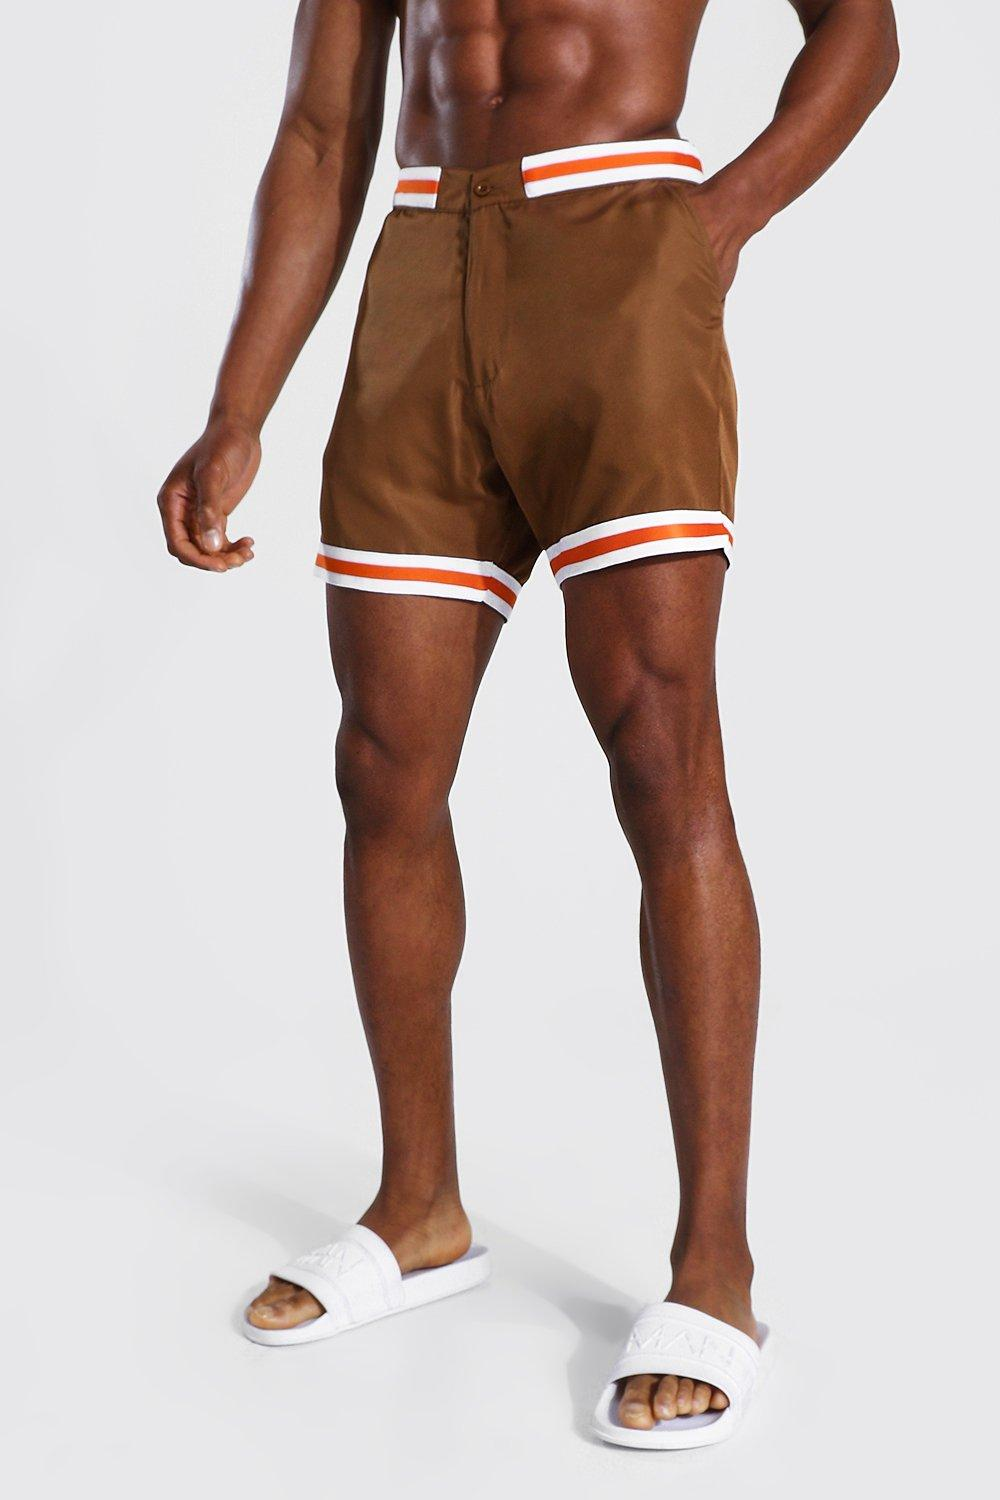 Vintage Men's Swimsuits – 1930s, 1940s, 1950s History Mens Smart Waistband Mid Length Trunkss - Brown $11.00 AT vintagedancer.com